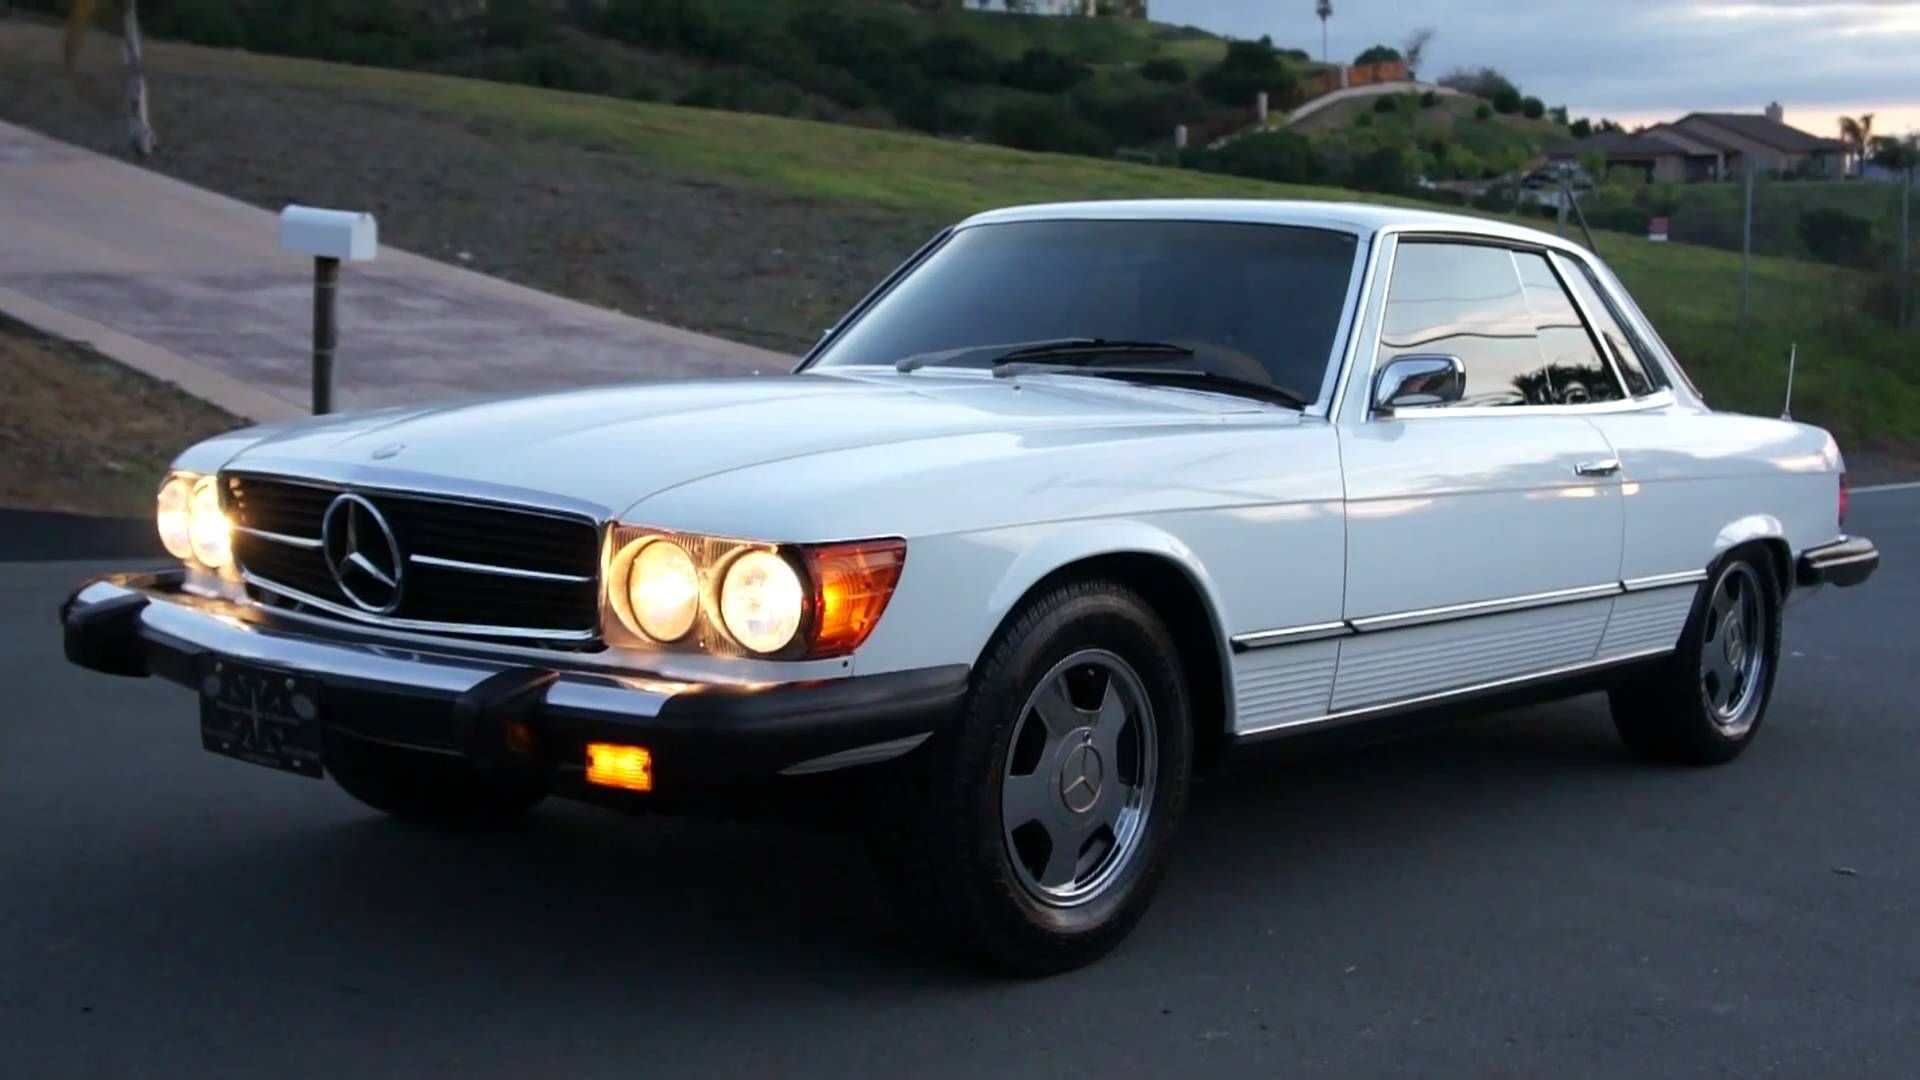 Pin By Atvnetworkscom On 3 5 0 V8 Swapped Out Conversions Engine Wiring Harness Rebuild Service For Mercedes Mercedesbenz Visit